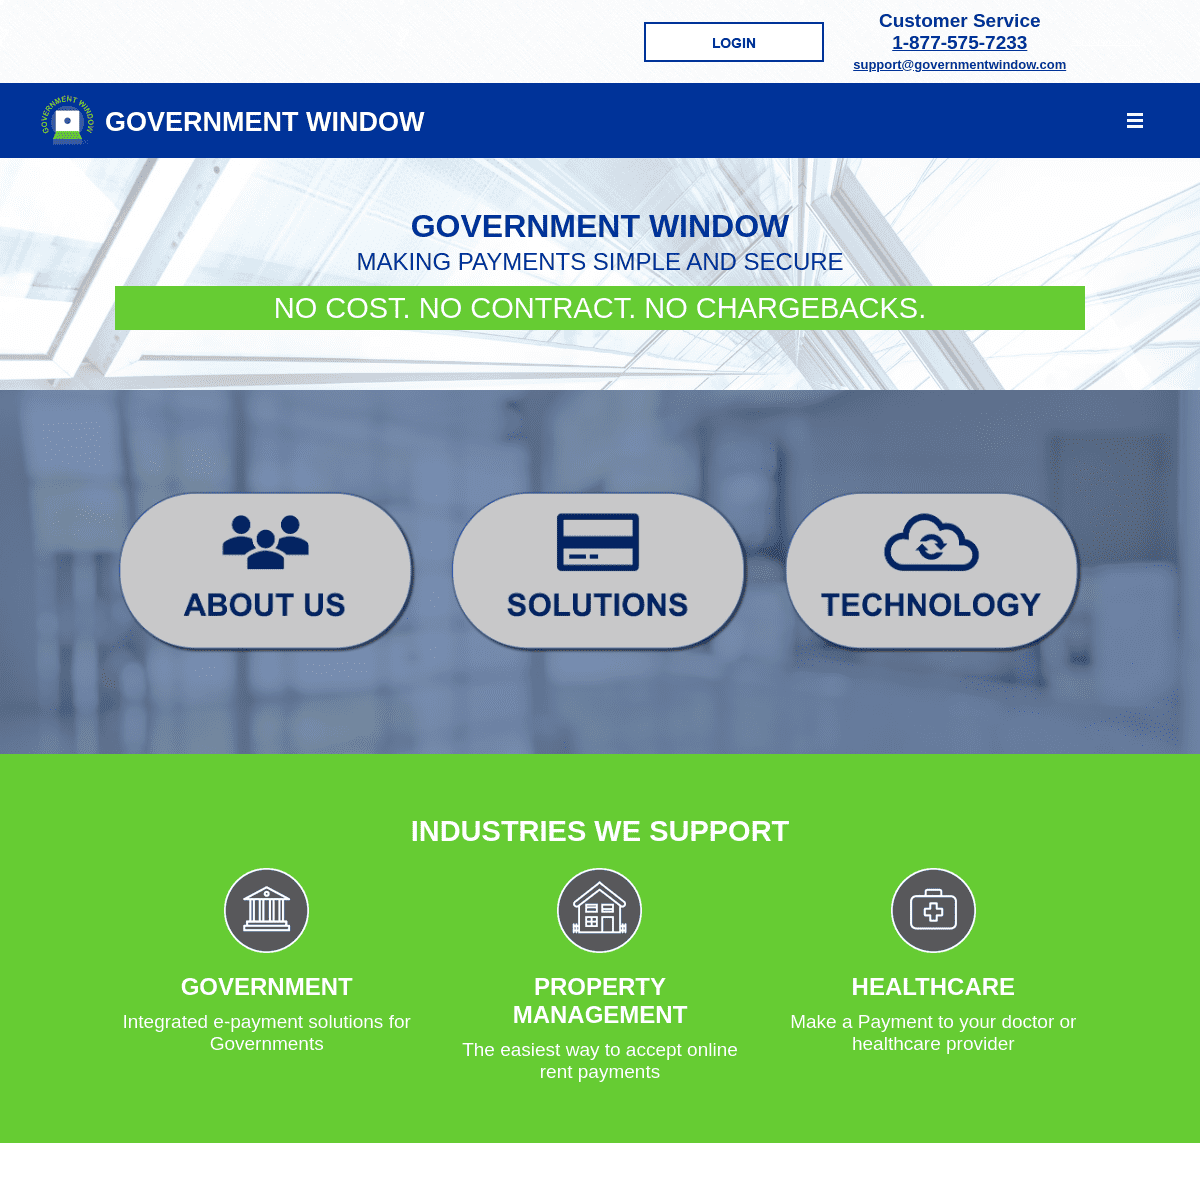 ArchiveBay.com - governmentwindow.com - Government Window - Innovative e-Payment Solutions for Government Agencies